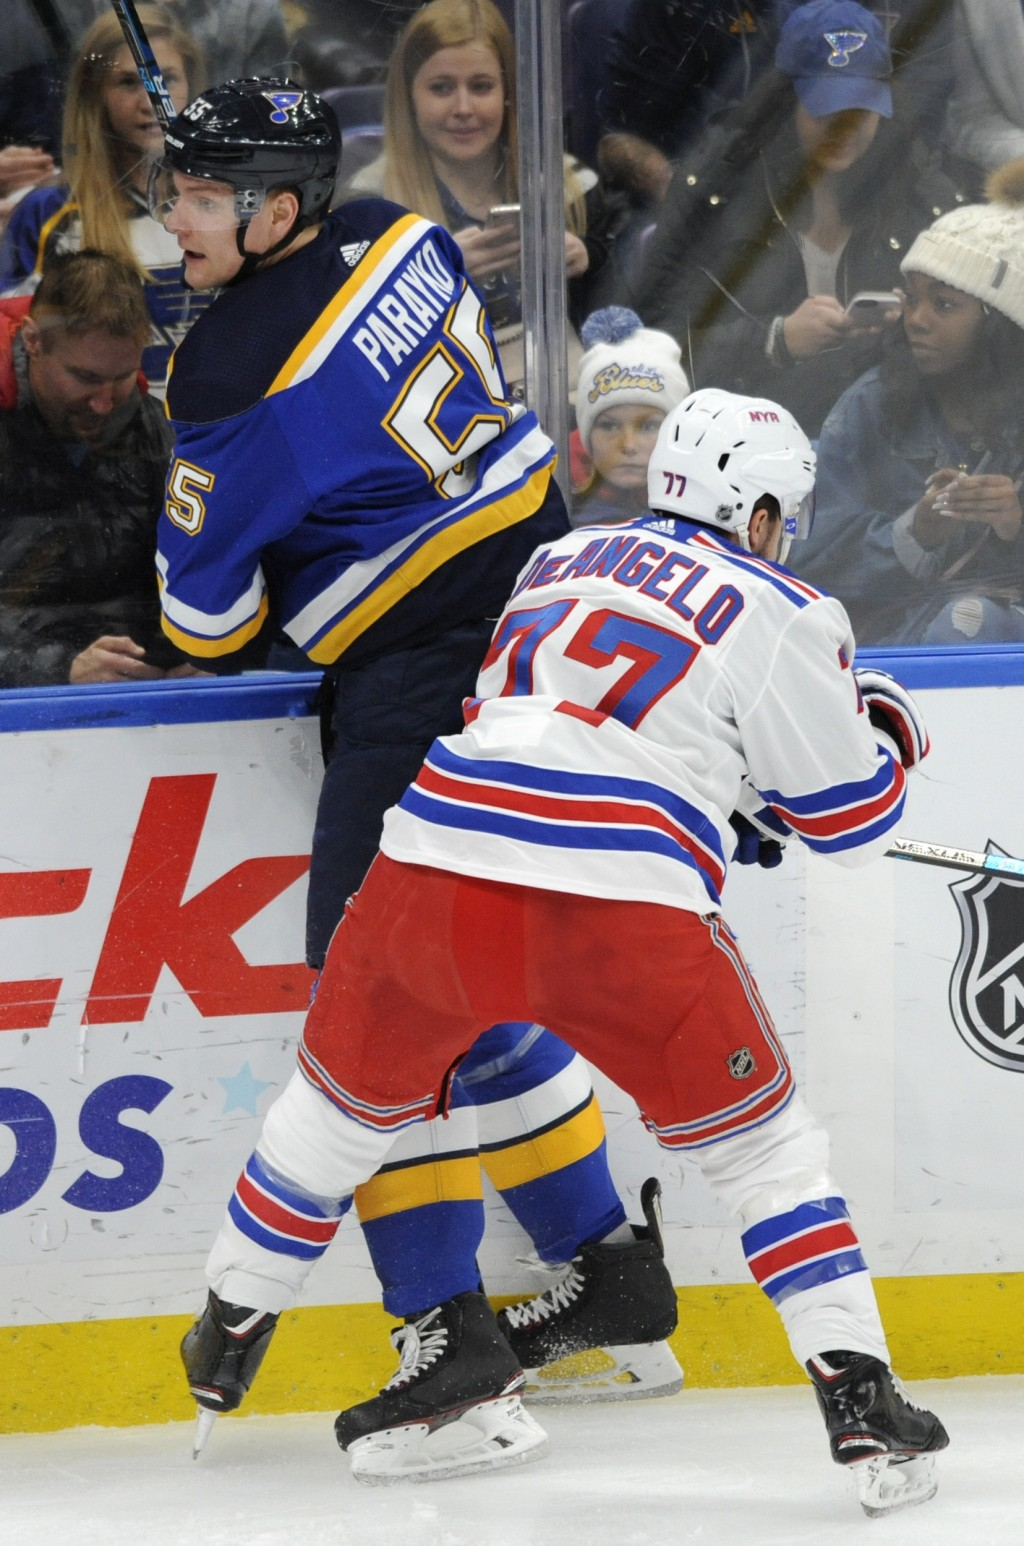 St. Louis Blues' Colton Parayko (55) is checked by New York Rangers' Tony DeAngelo (77) during the first period of an NHL hockey game Monday, Dec. 31,